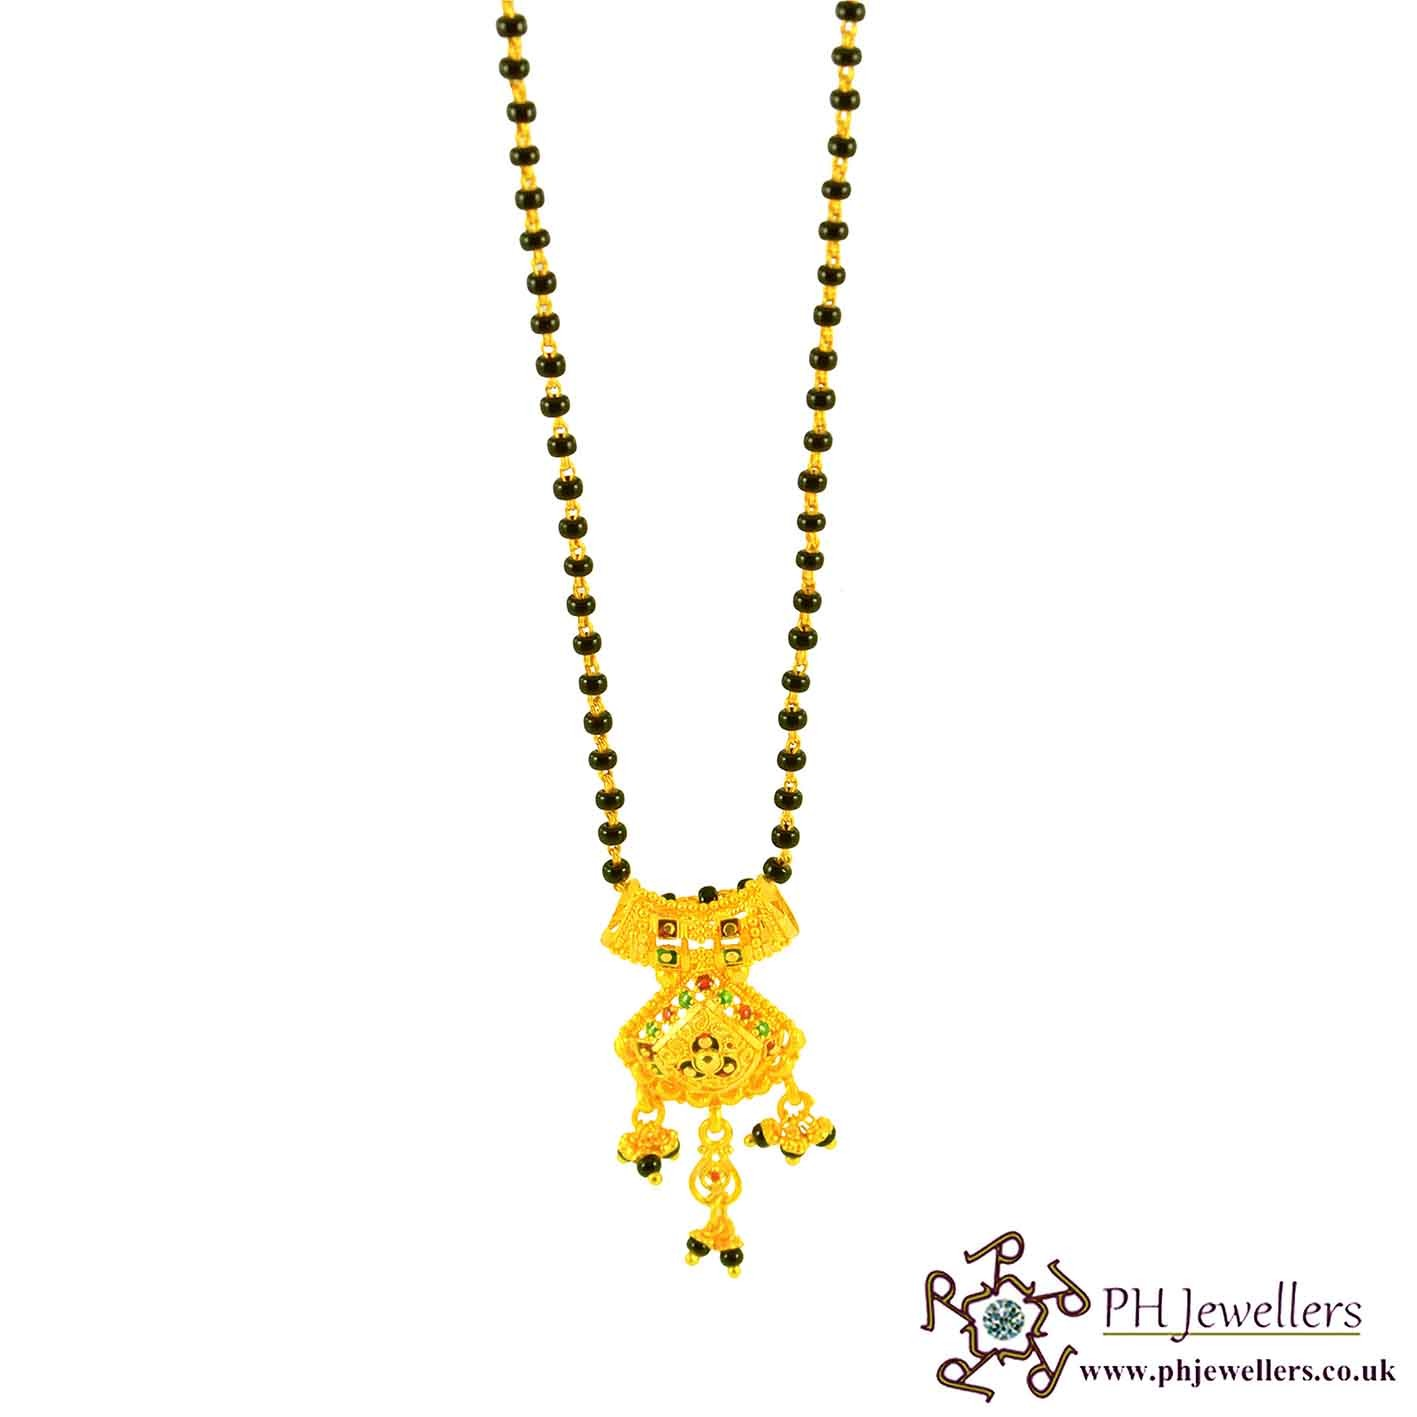 22ct 916 Hallmark Yellow Gold Black Bead Chain Mangalsutra MS1